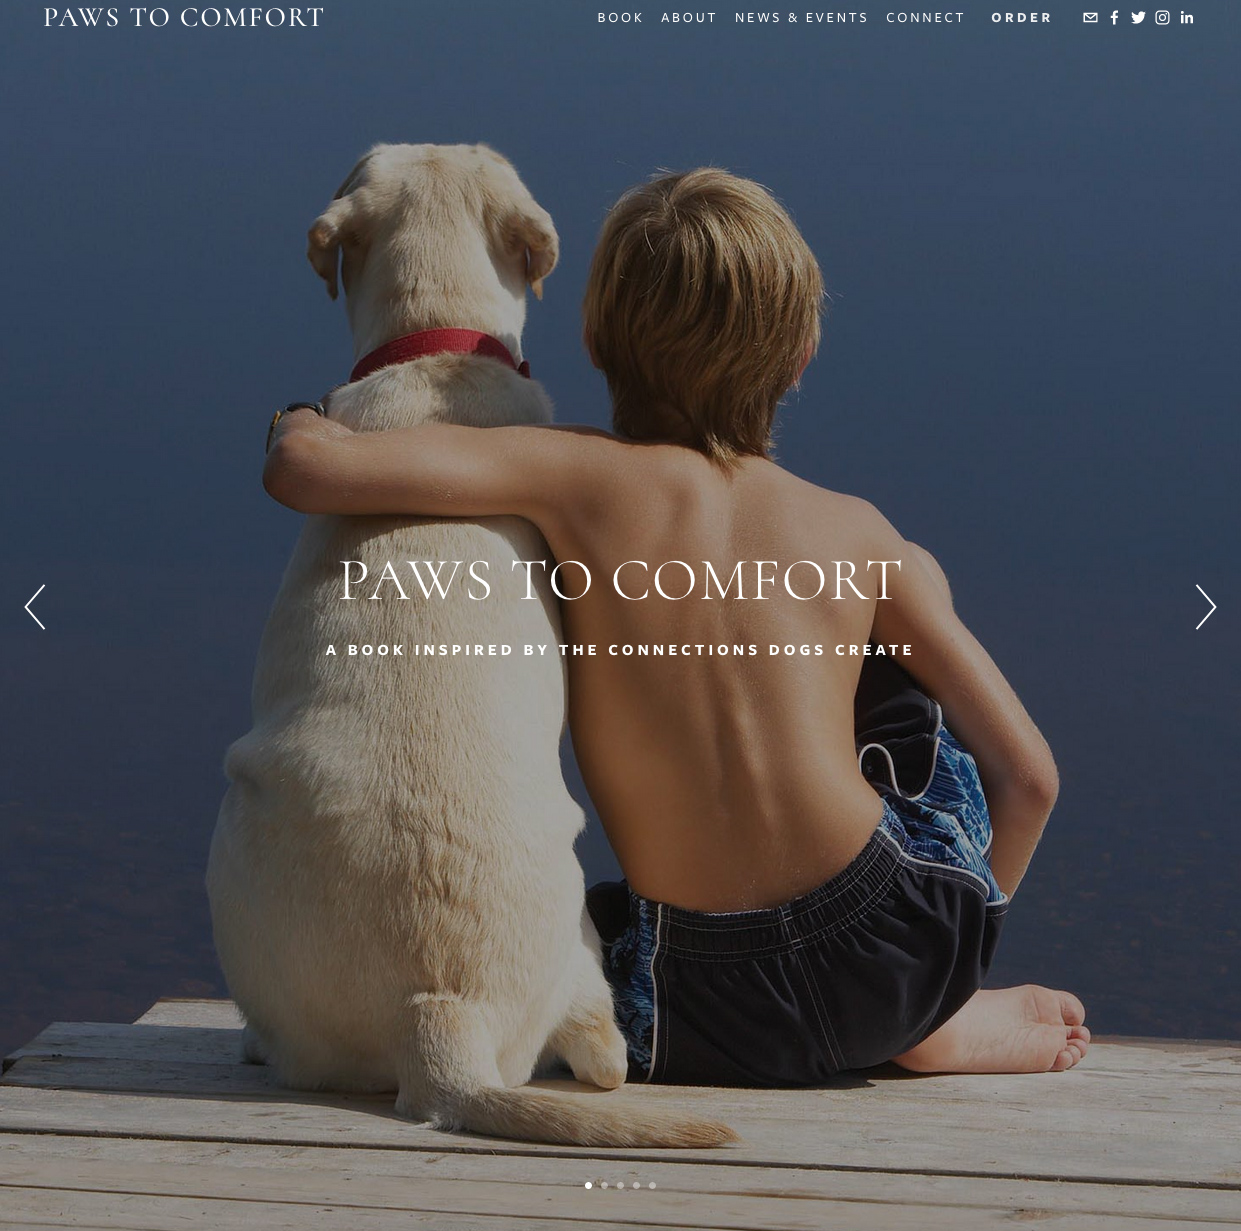 Advance website for Kickstarter campaign to fund publication of Paws to Comfort by Jenn Mar with Skye Quinn